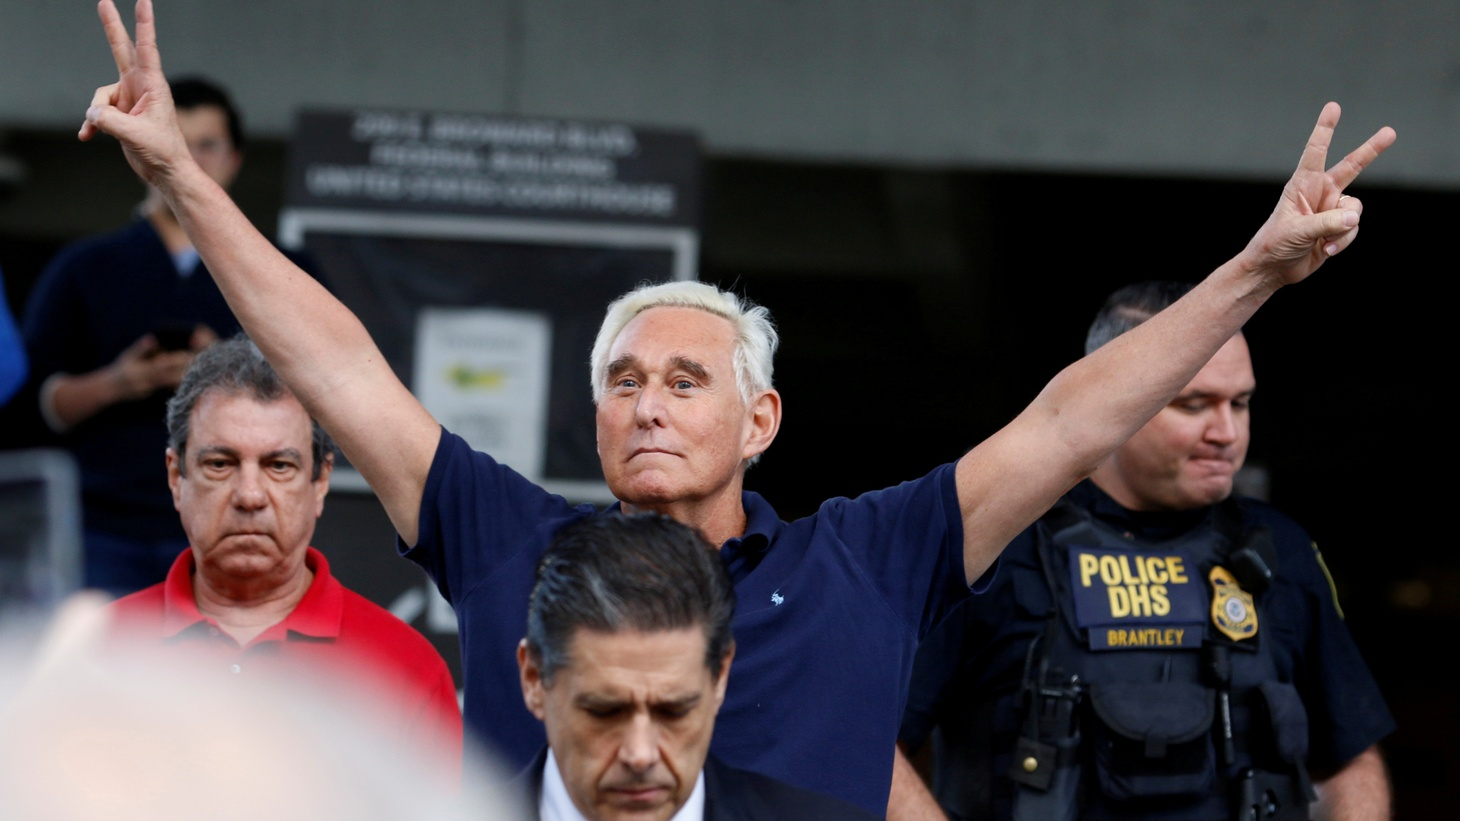 Roger Stone reacts as he walks to microphones after his appearance at Federal Court in Fort Lauderdale, Florida, U.S., January 25, 2019.